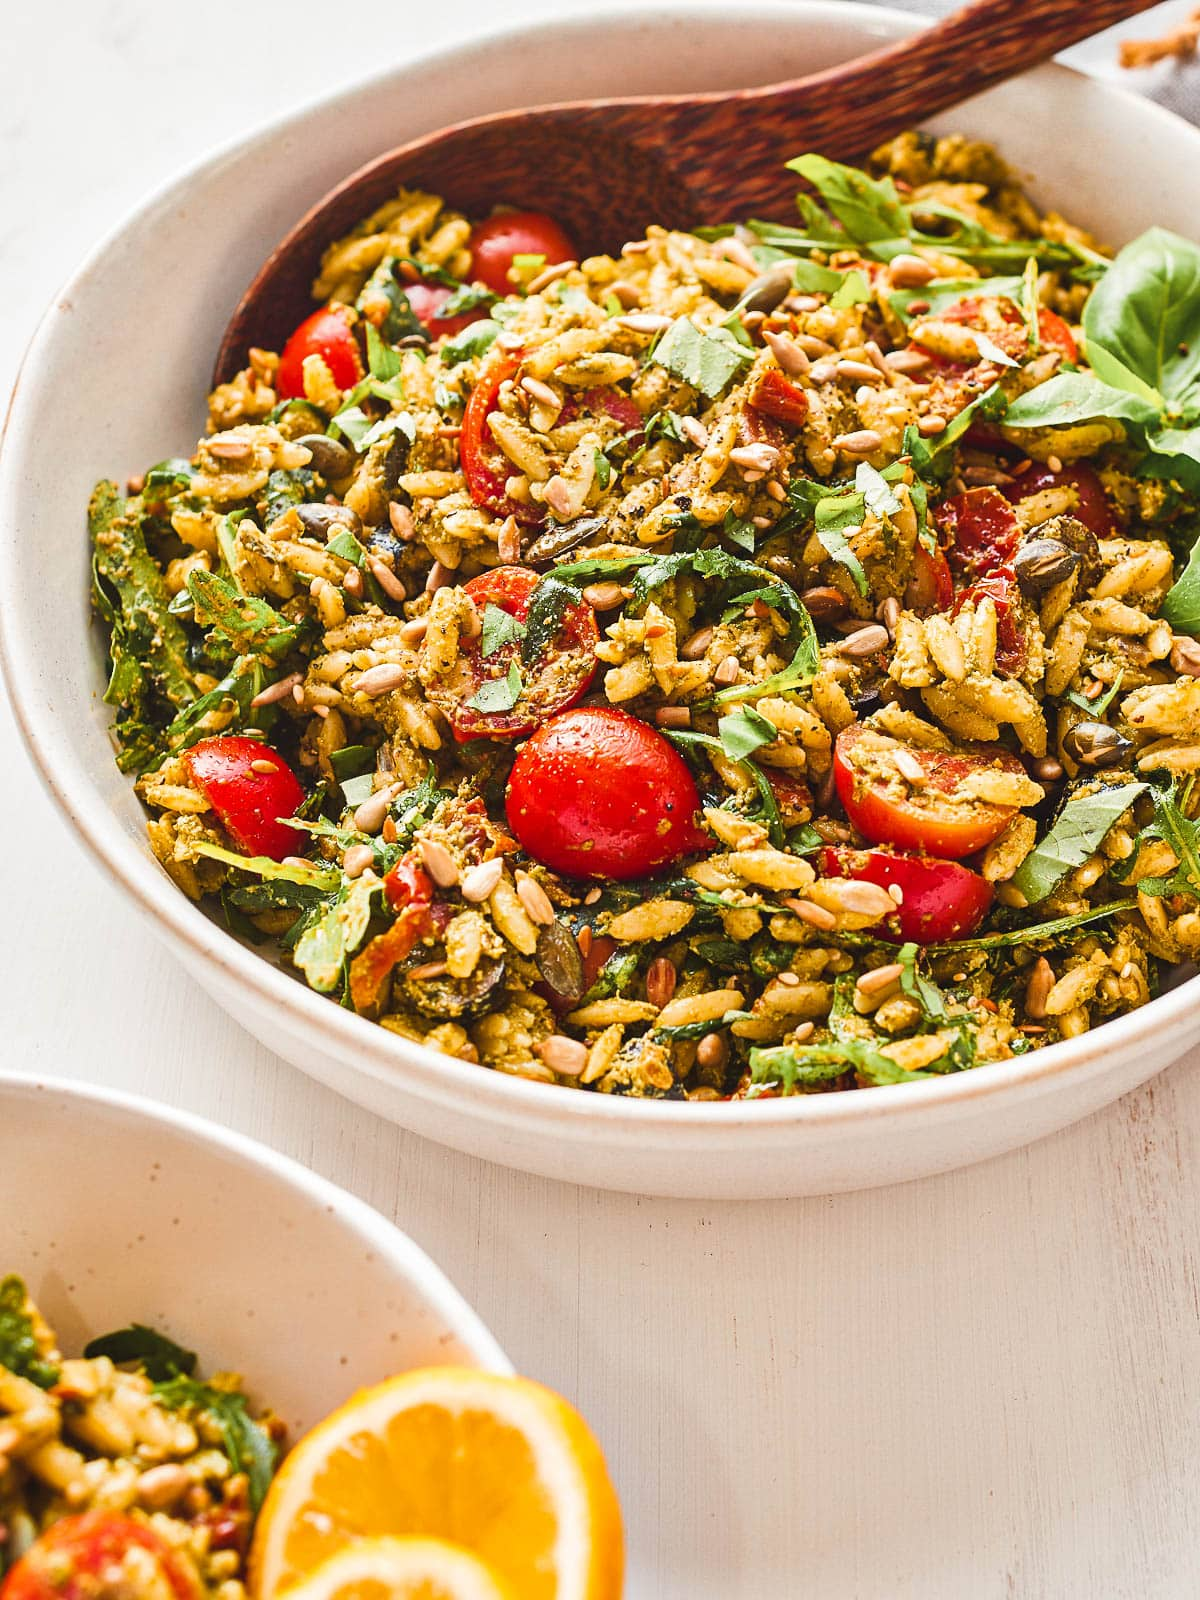 Serving bowl of pesto orzo salad with a served up portion on the side